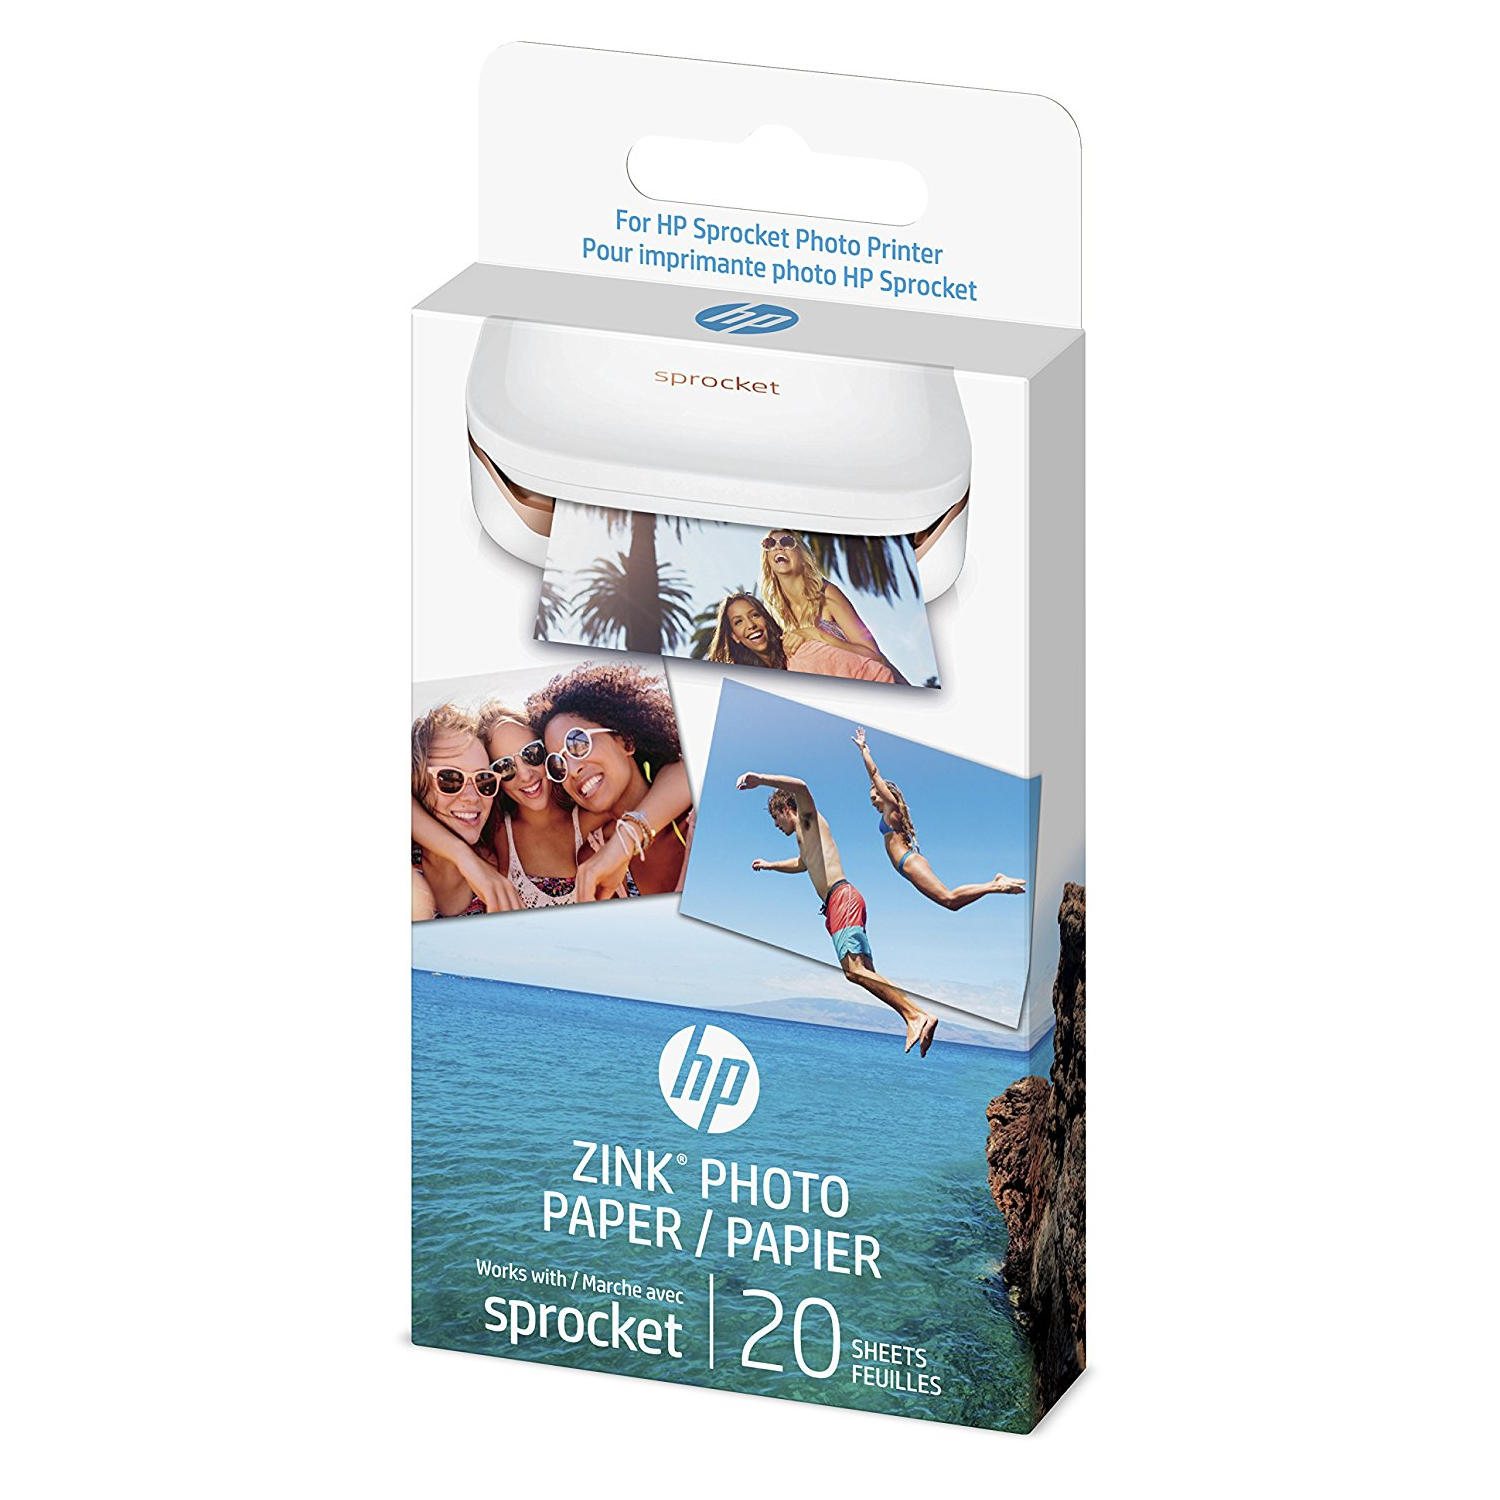 HP ZINK Sticky-backed Photo Paper for HP Sprocket Printer - 20 Sheets, 2 x 3 in